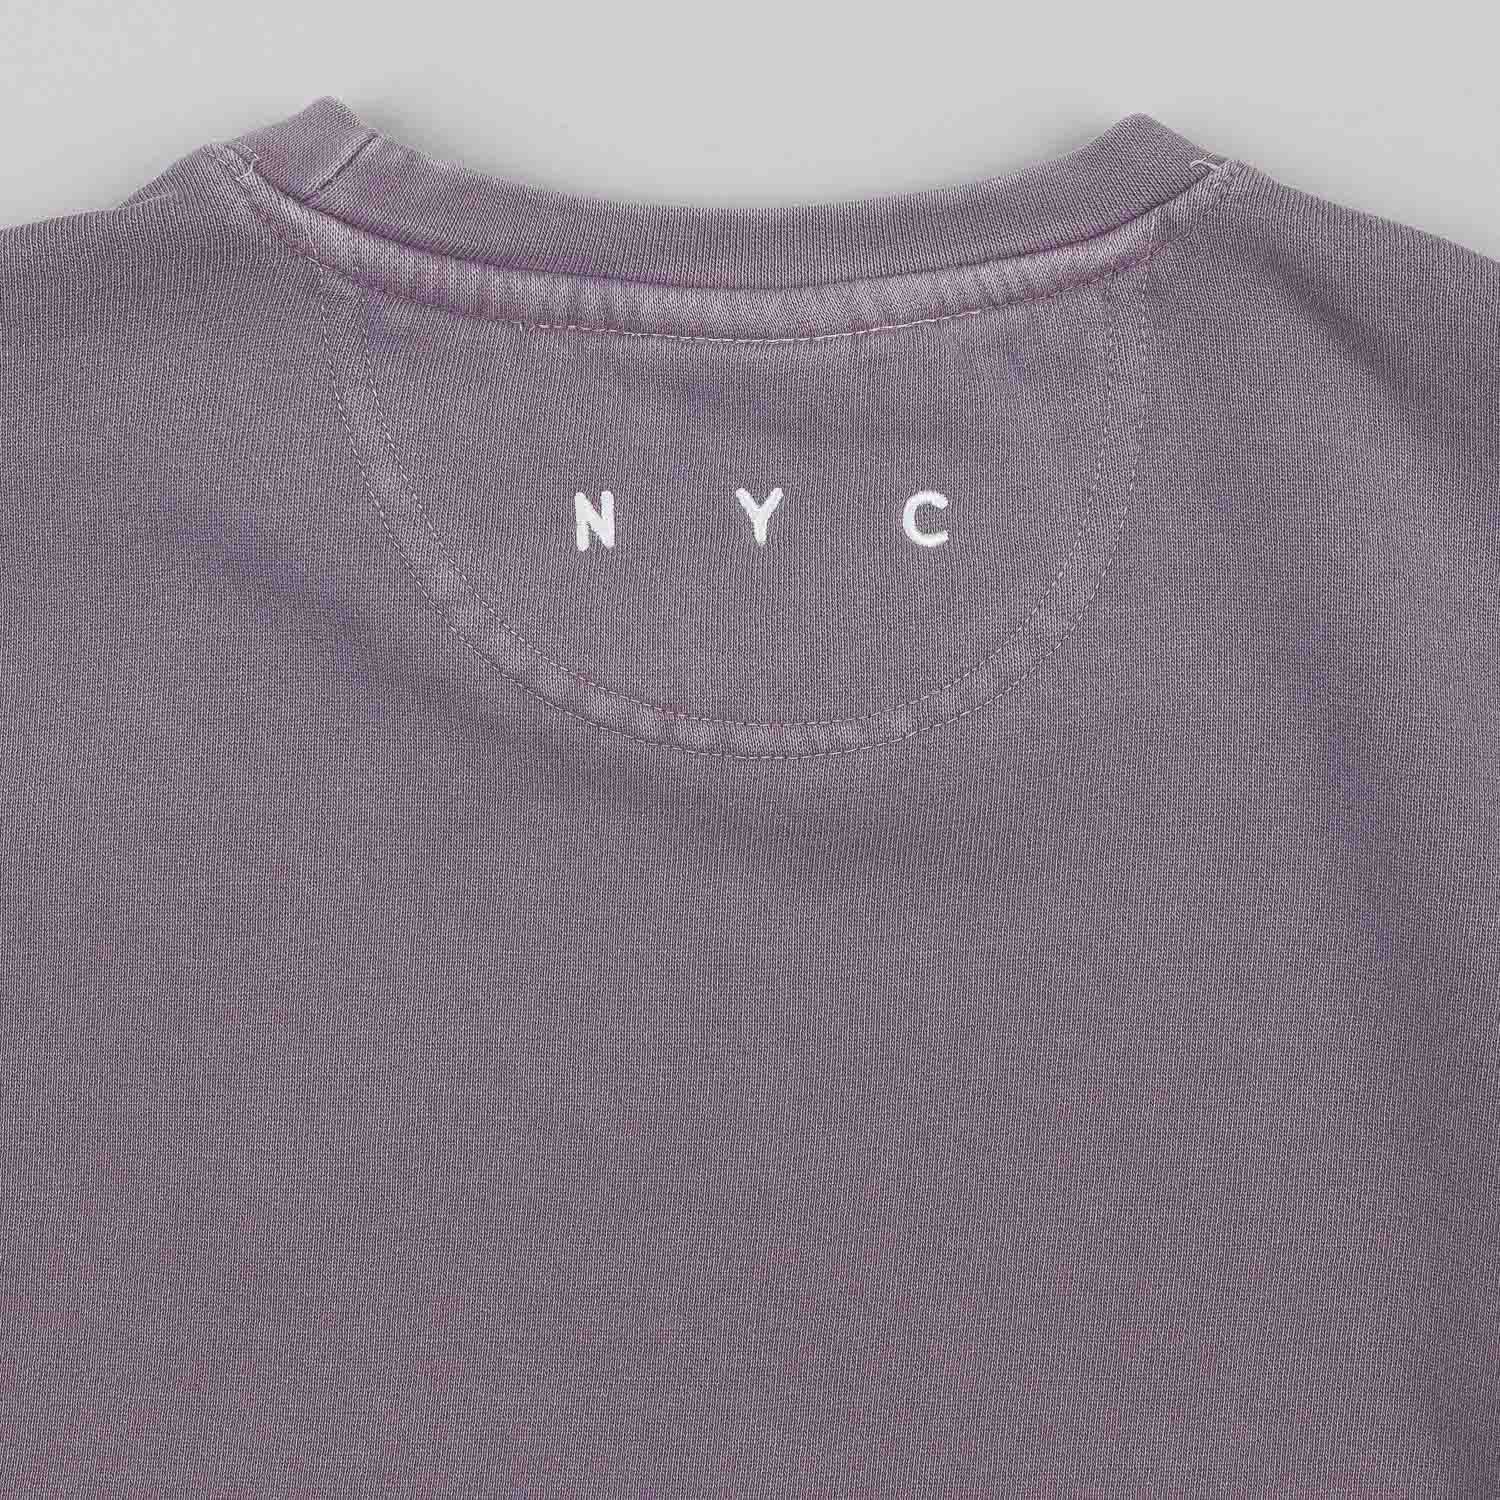 Belief Triboro Crew Neck Sweatshirt - Clay